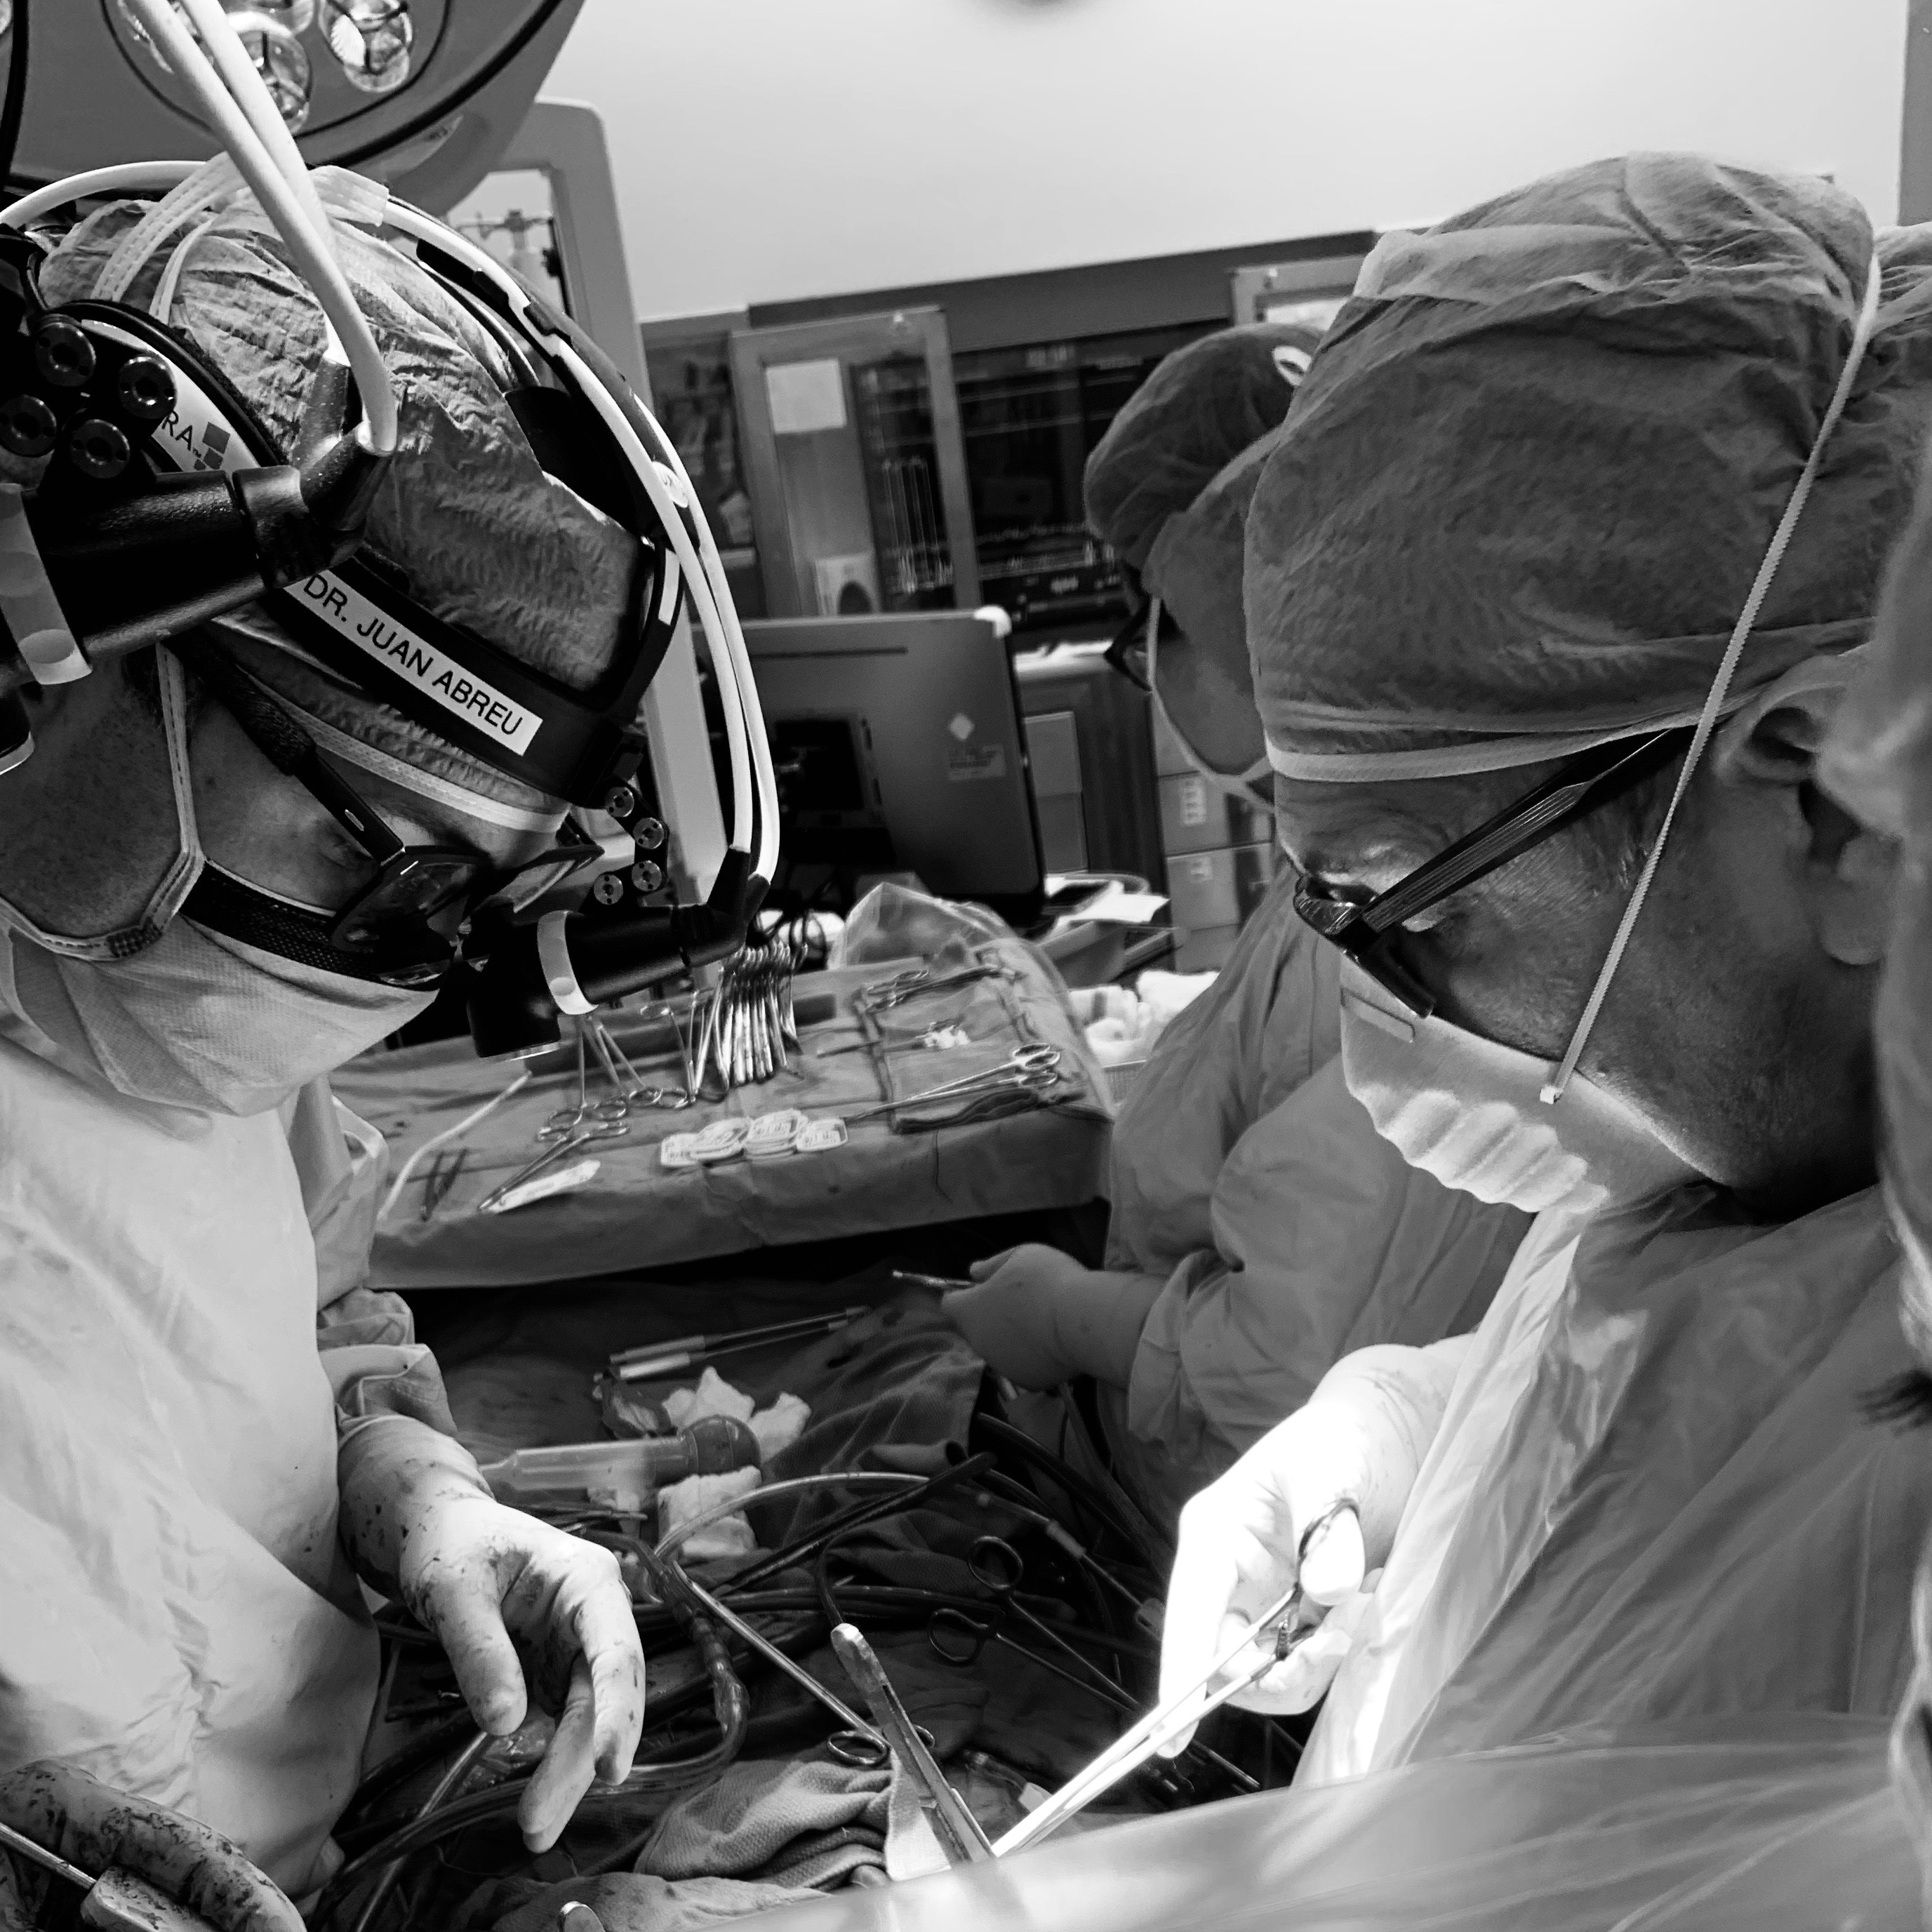 image from Abreu reflects on his first year as Faculty with Cardiothoracic Surgery